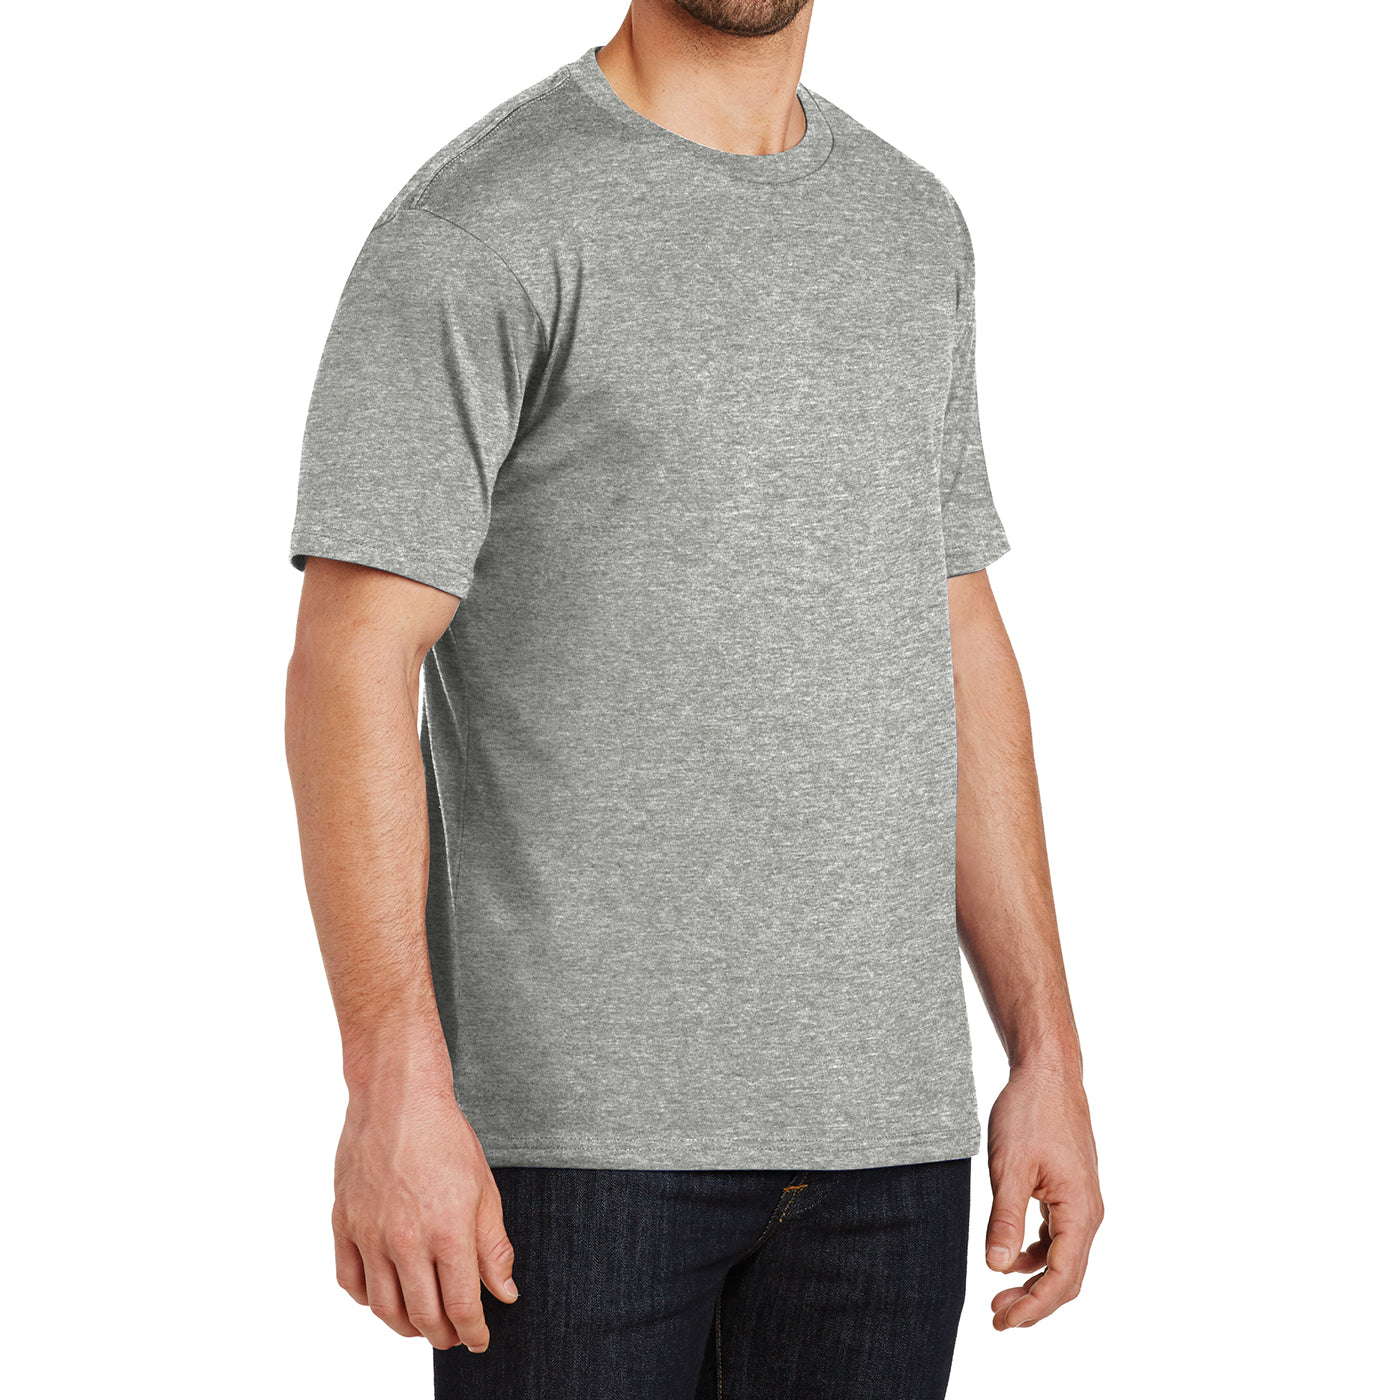 Mens Perfect Weight Crew Tee - Heathered Steel - Side